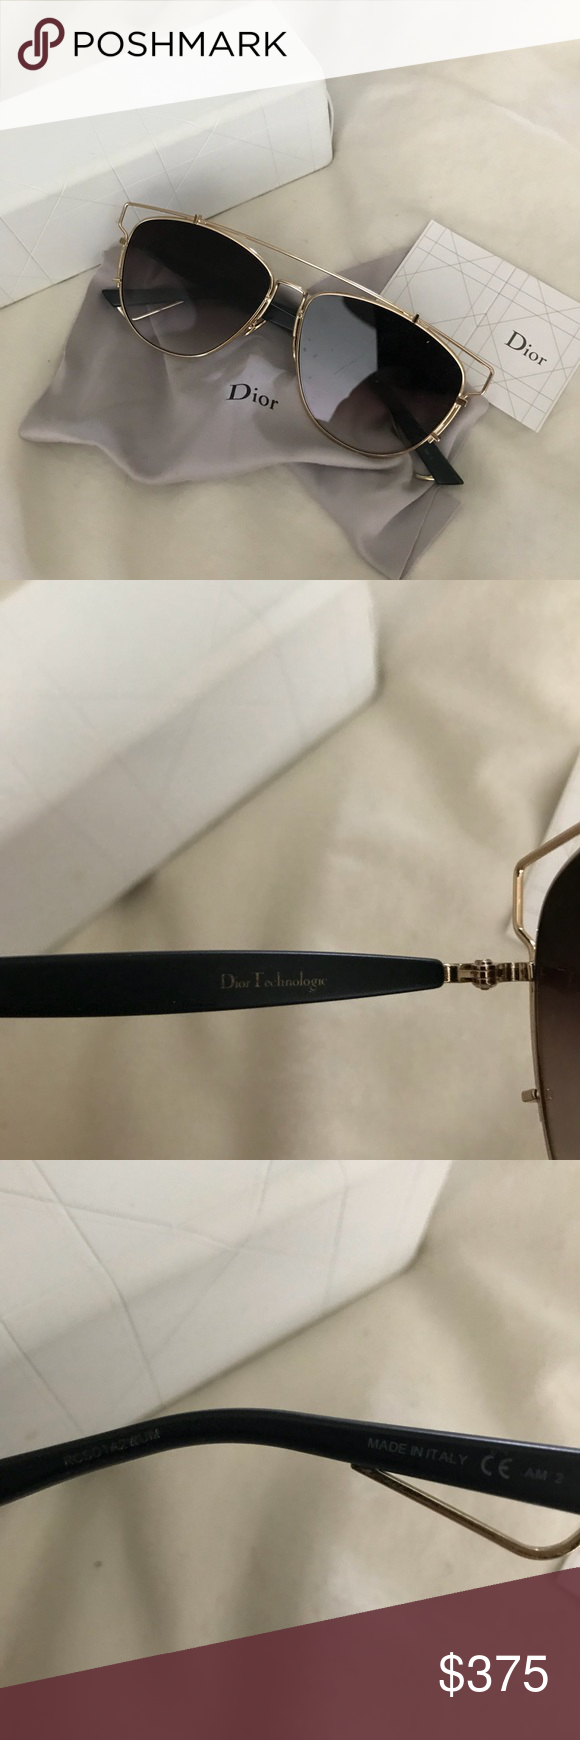 3024b15386a1 Dior Technological Shades in Faded Gold Bronze 100% authentic - I only sell  authentic items SOLD OUT everywhere Comes with original box